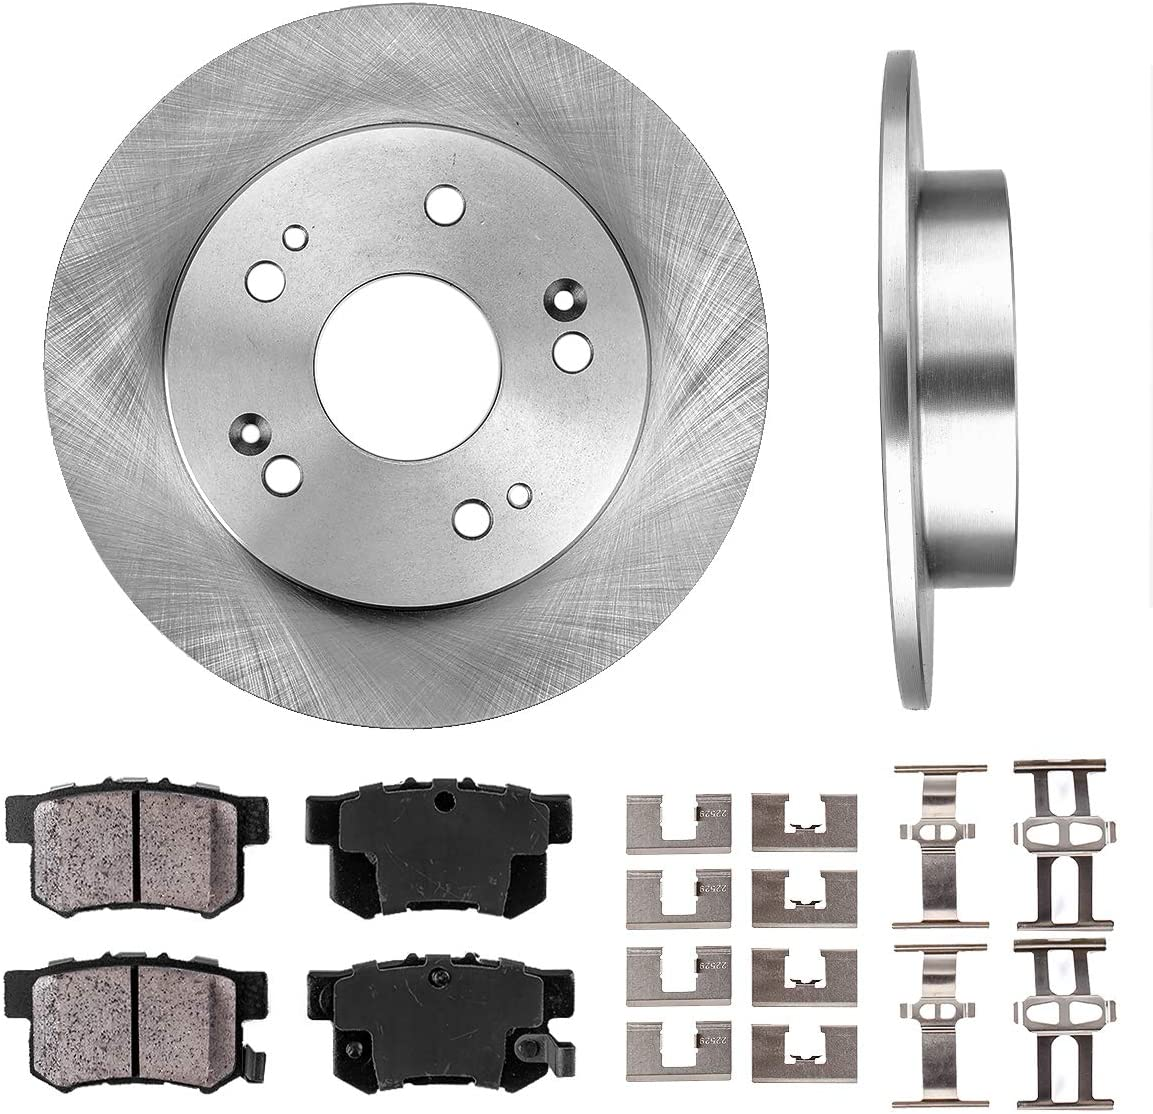 2006-2011 Civic EX EX-L Rotors w//Ceramic Pads OE Brakes Rear |Front